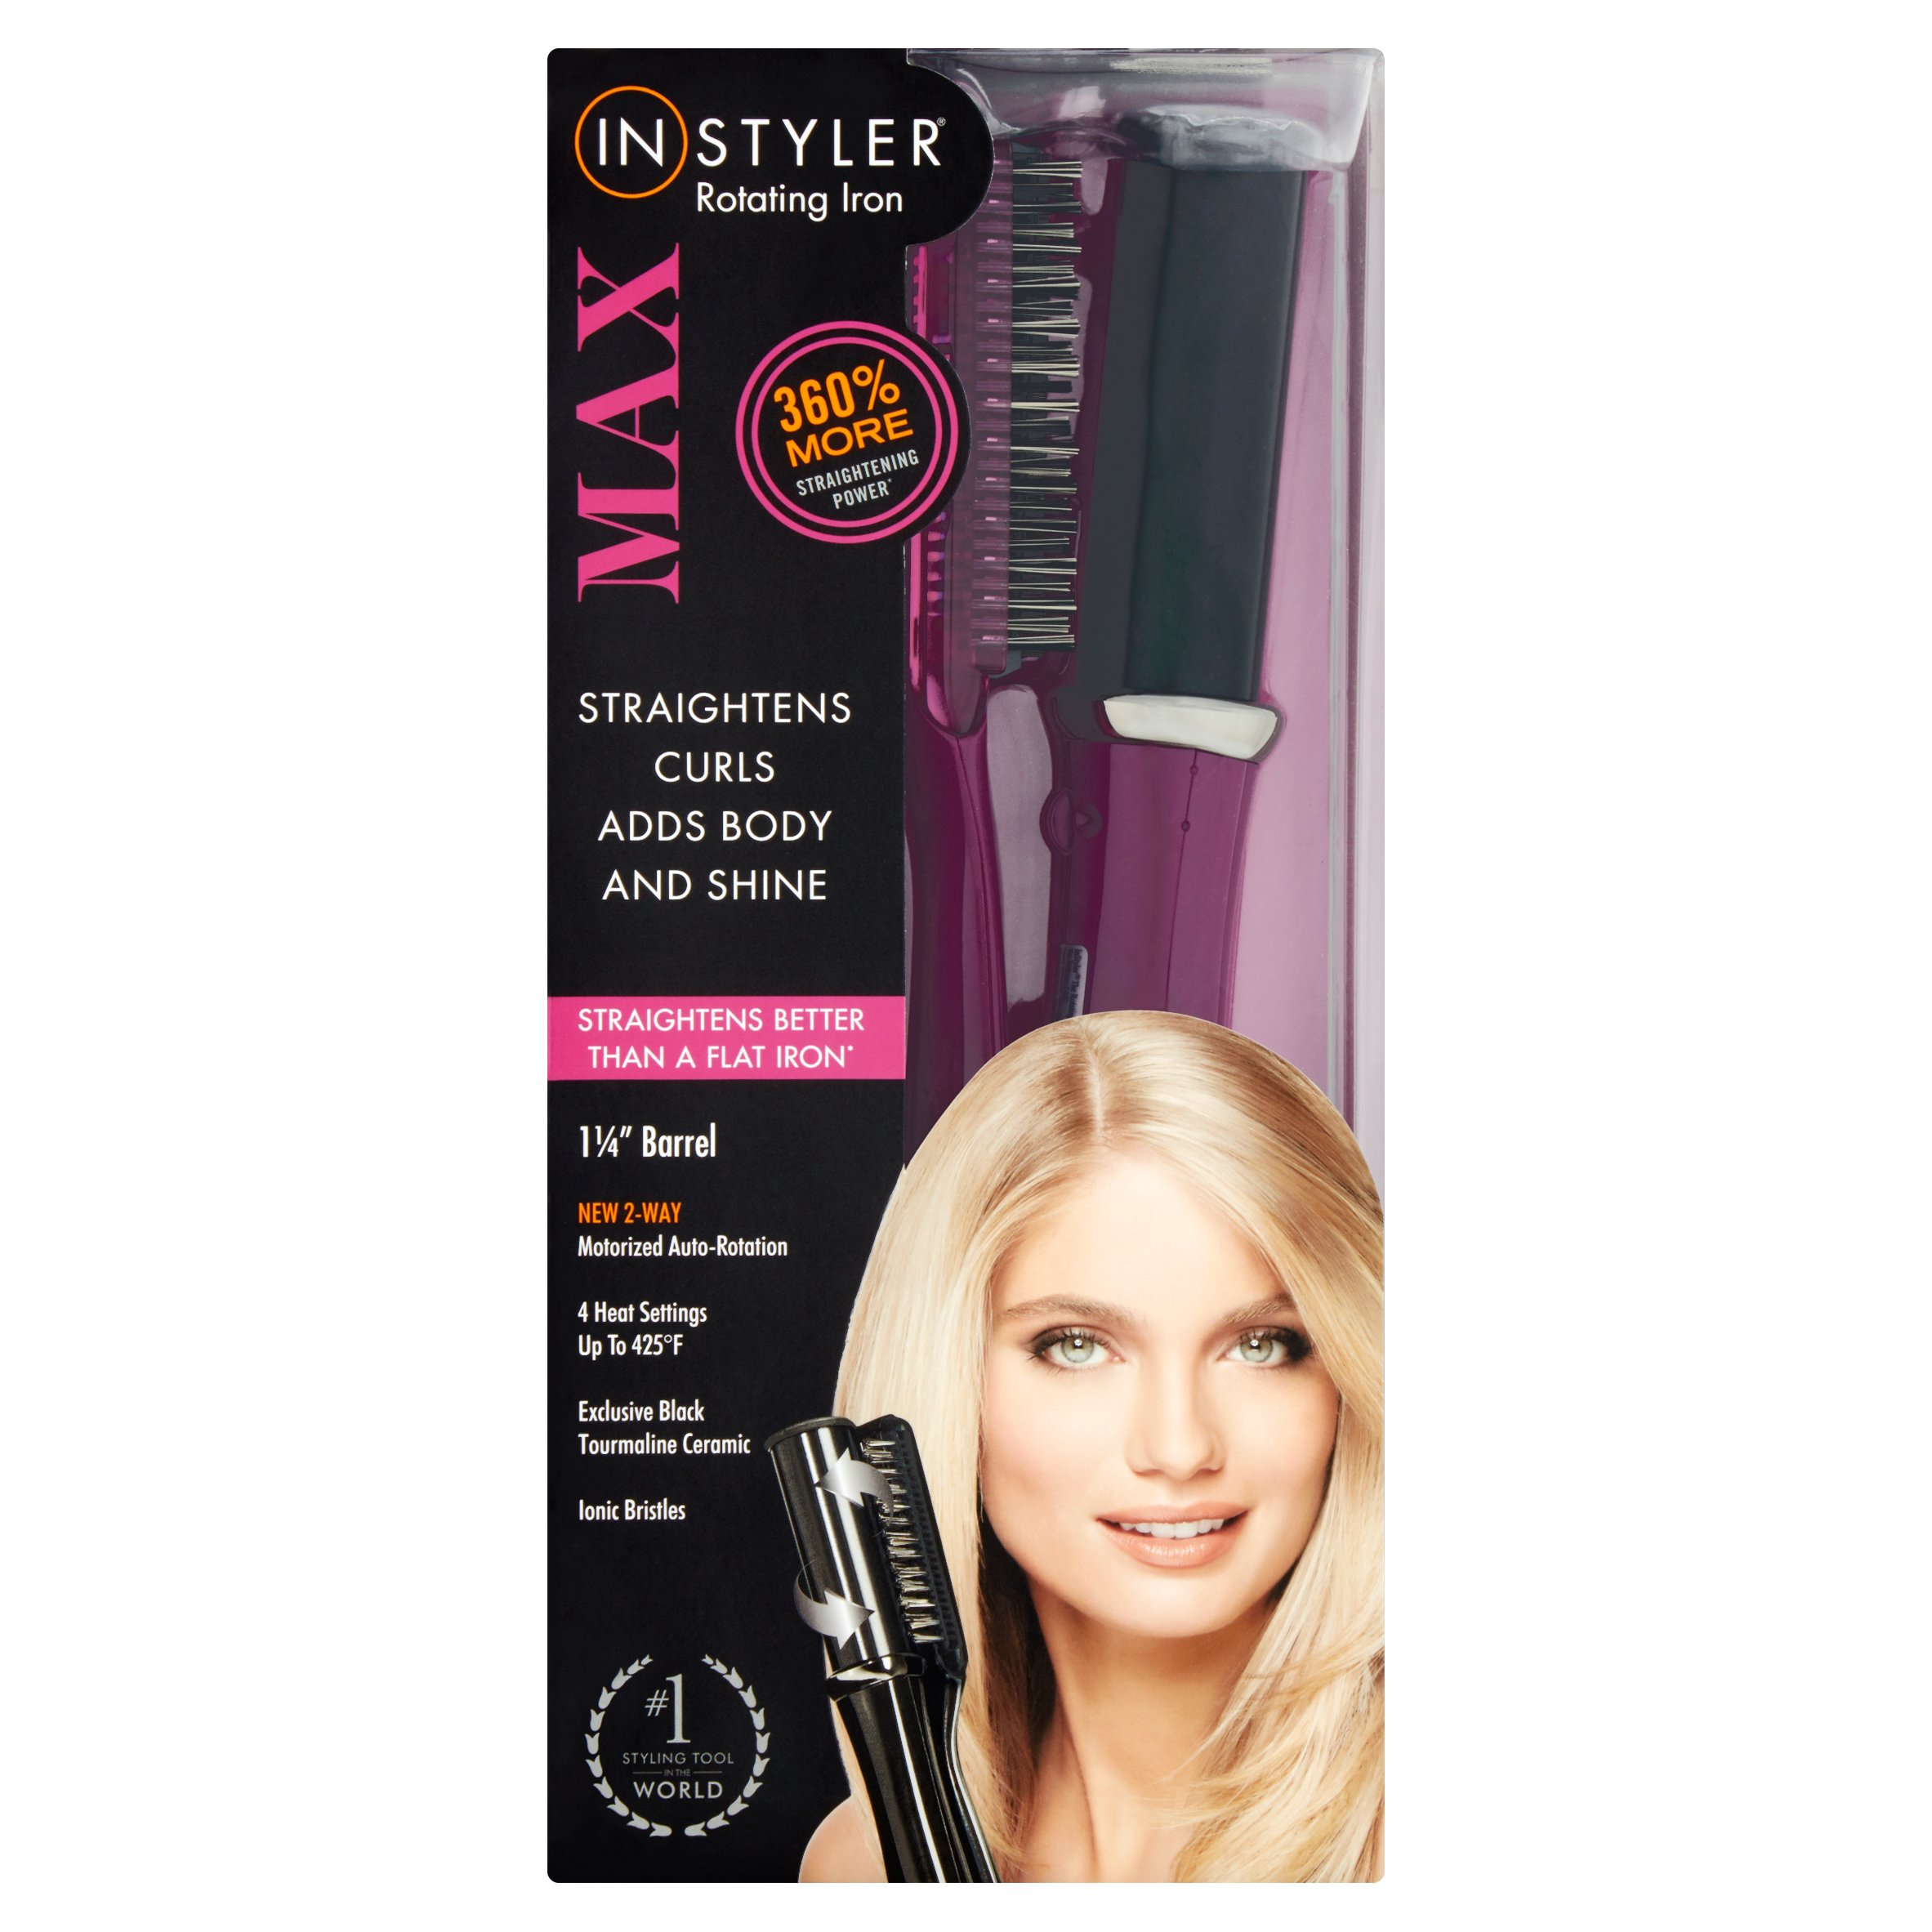 "InStyler Max 1.25"" Rotating Iron Hair Styler, Purple"